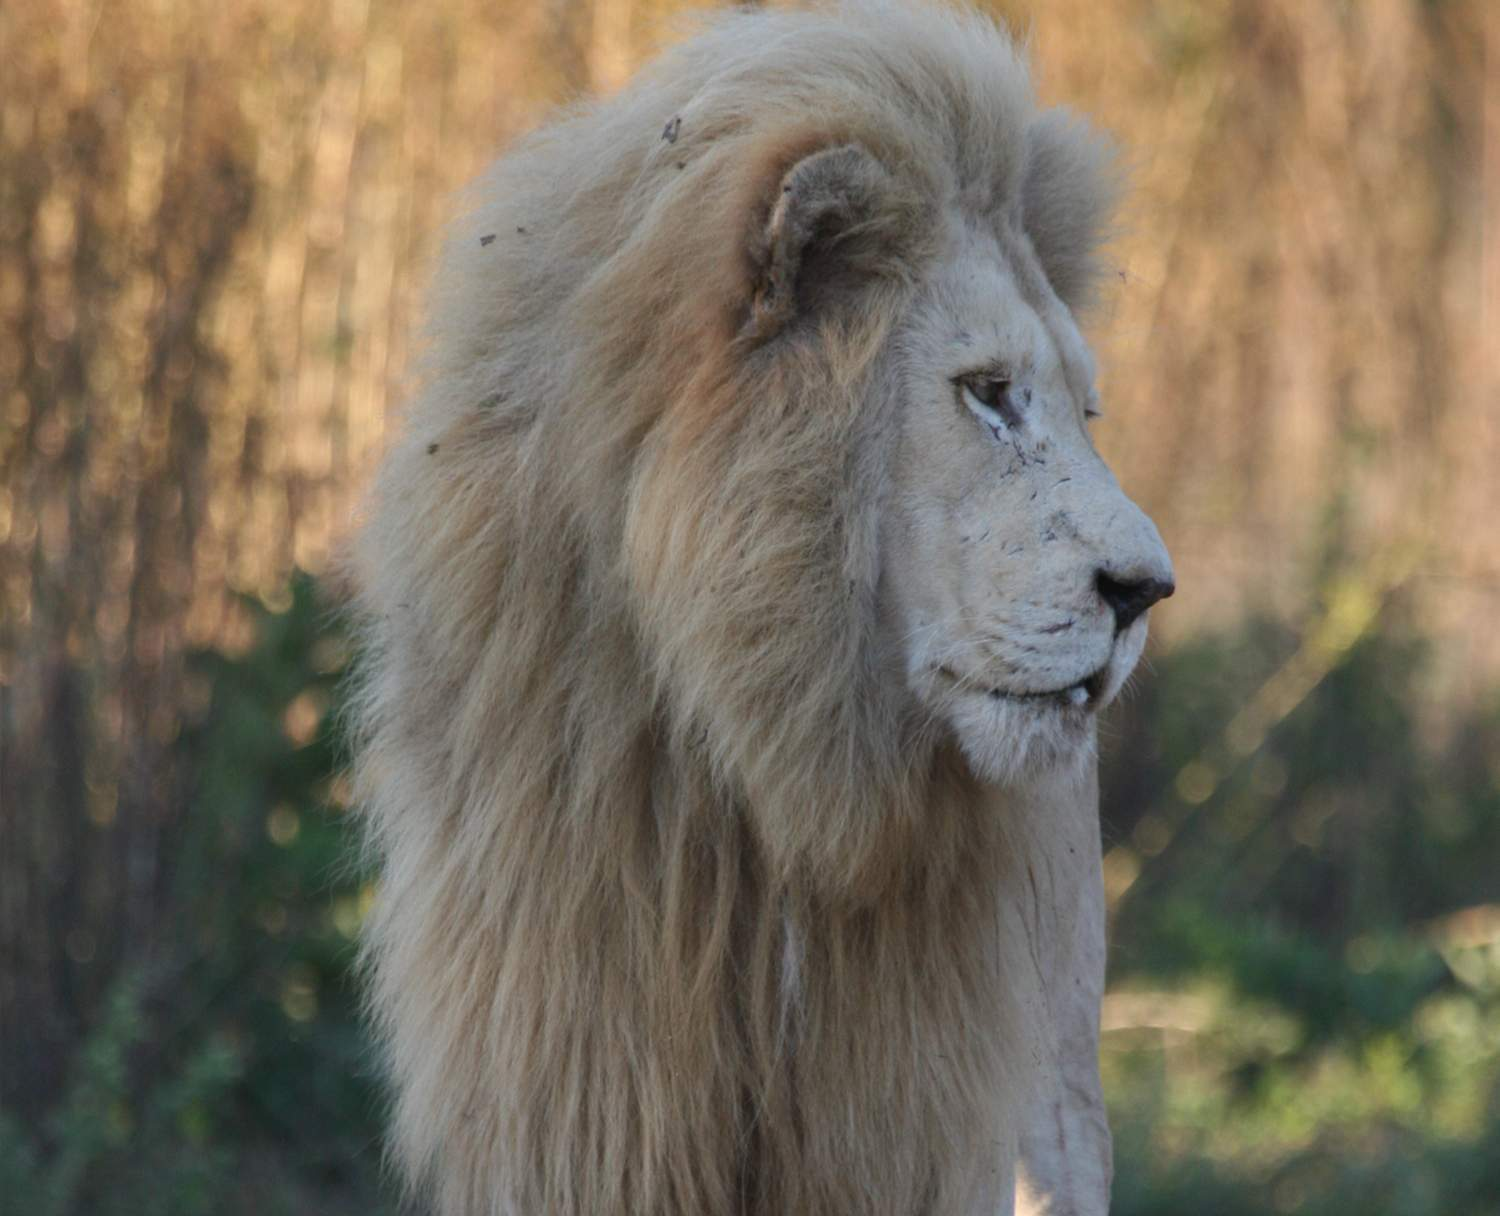 Close up of White Lion in profile view